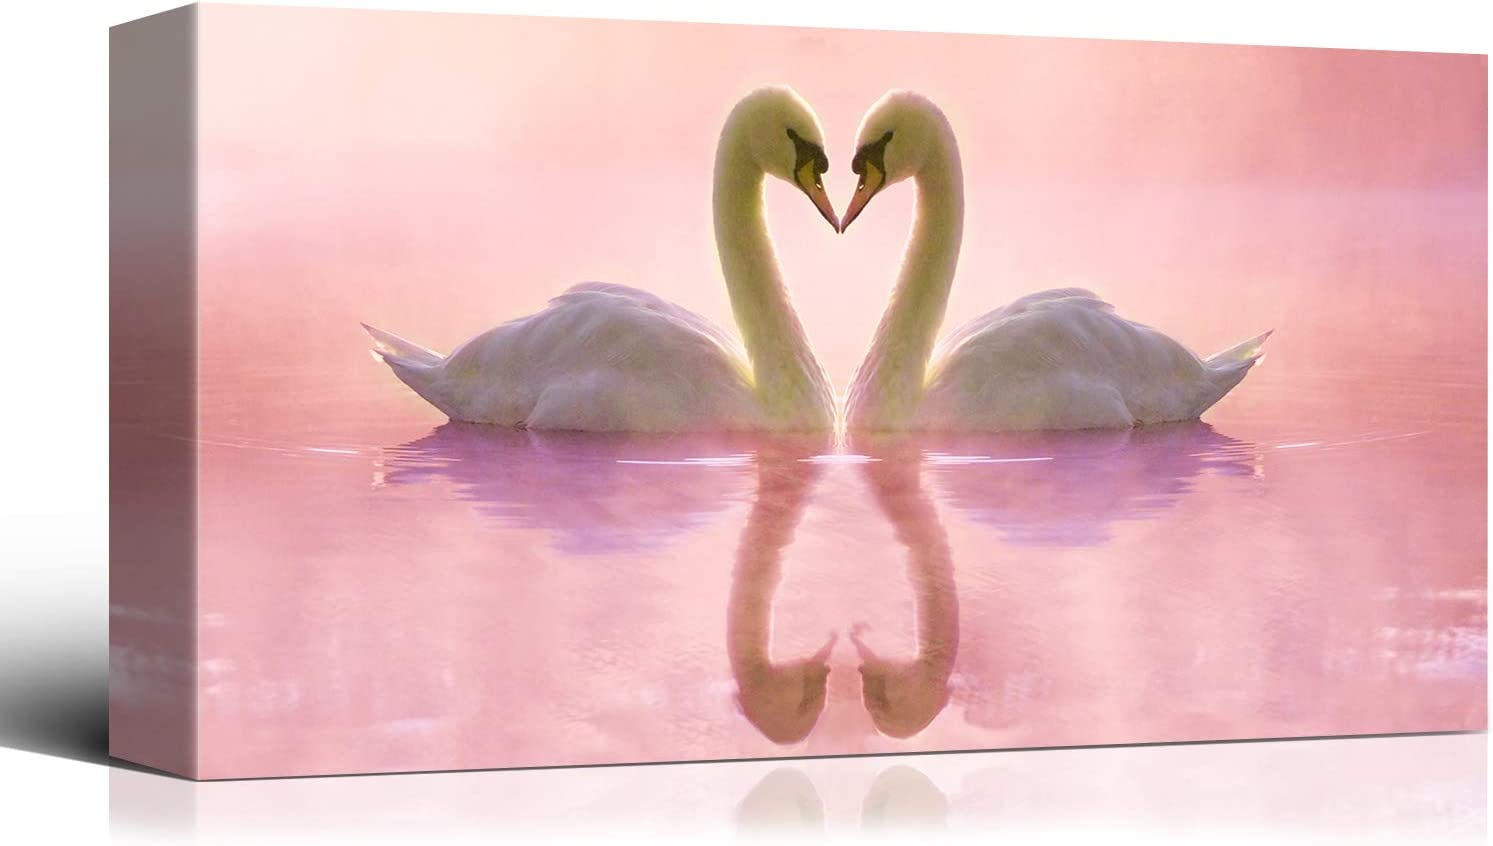 Laoife Animal Canvas Wall Art 40x20 Cash special price Pink Swan Inches White Backg Animer and price revision